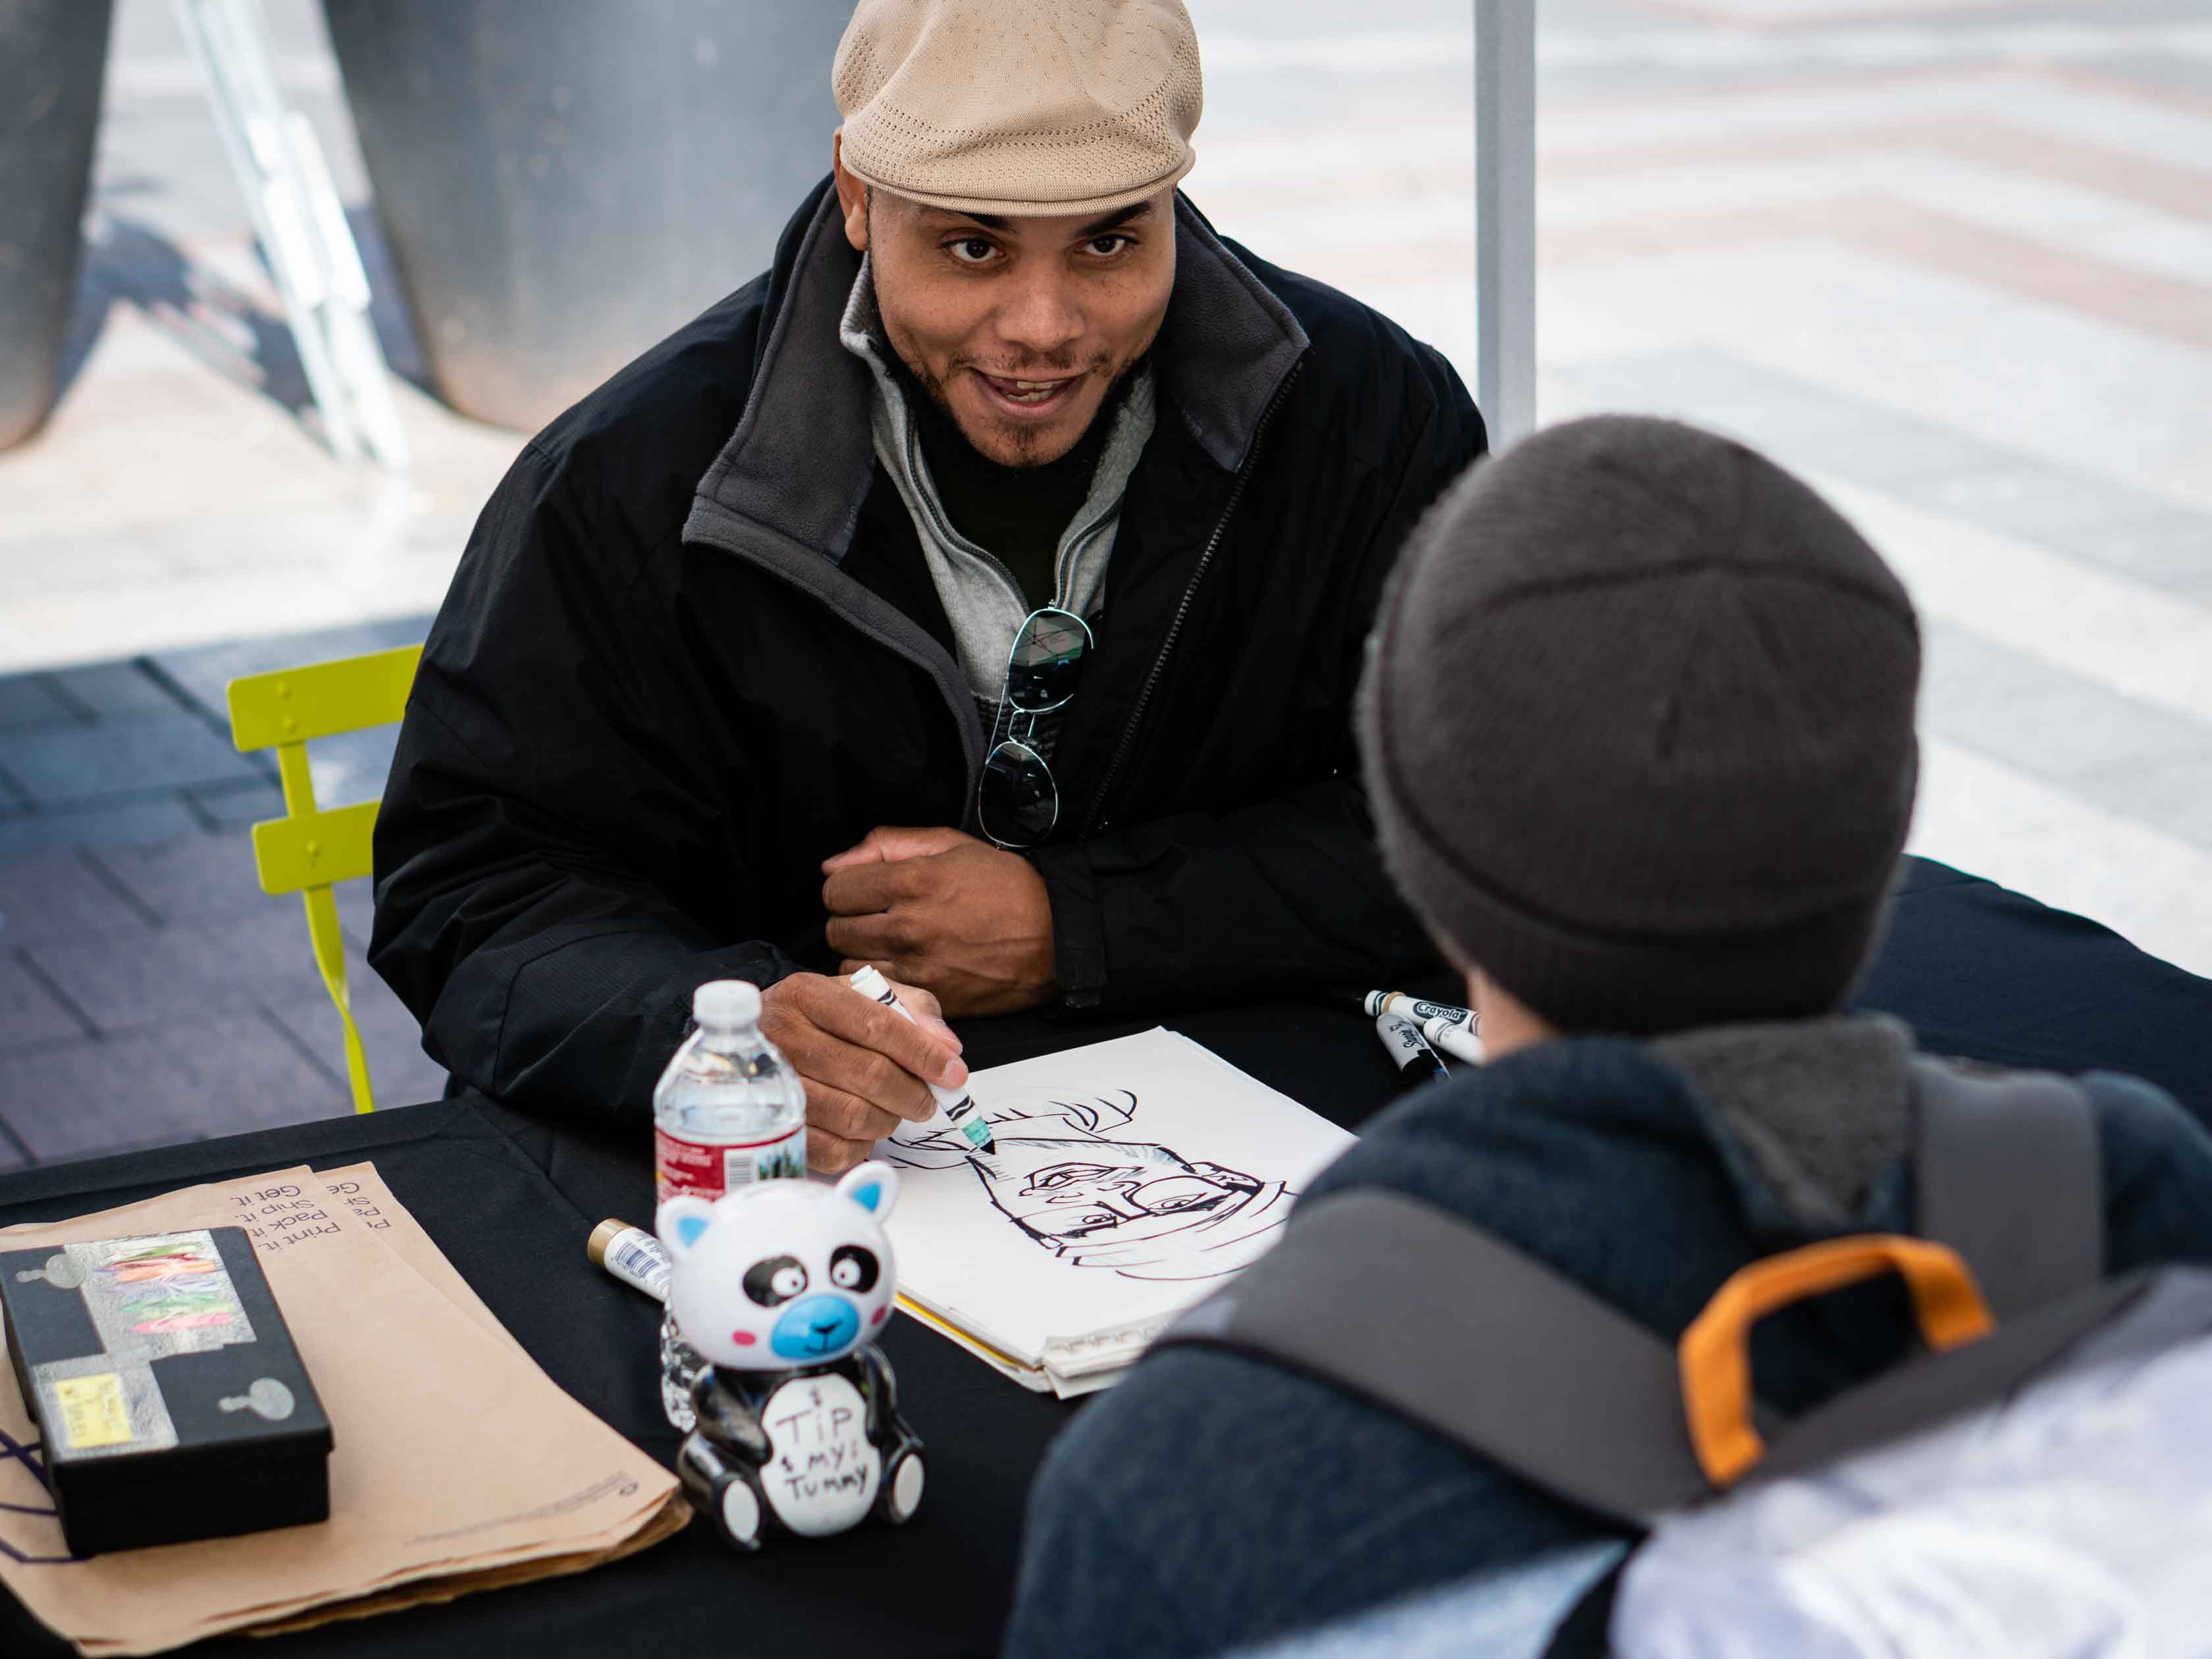 Caricature artist smiling and drawing.